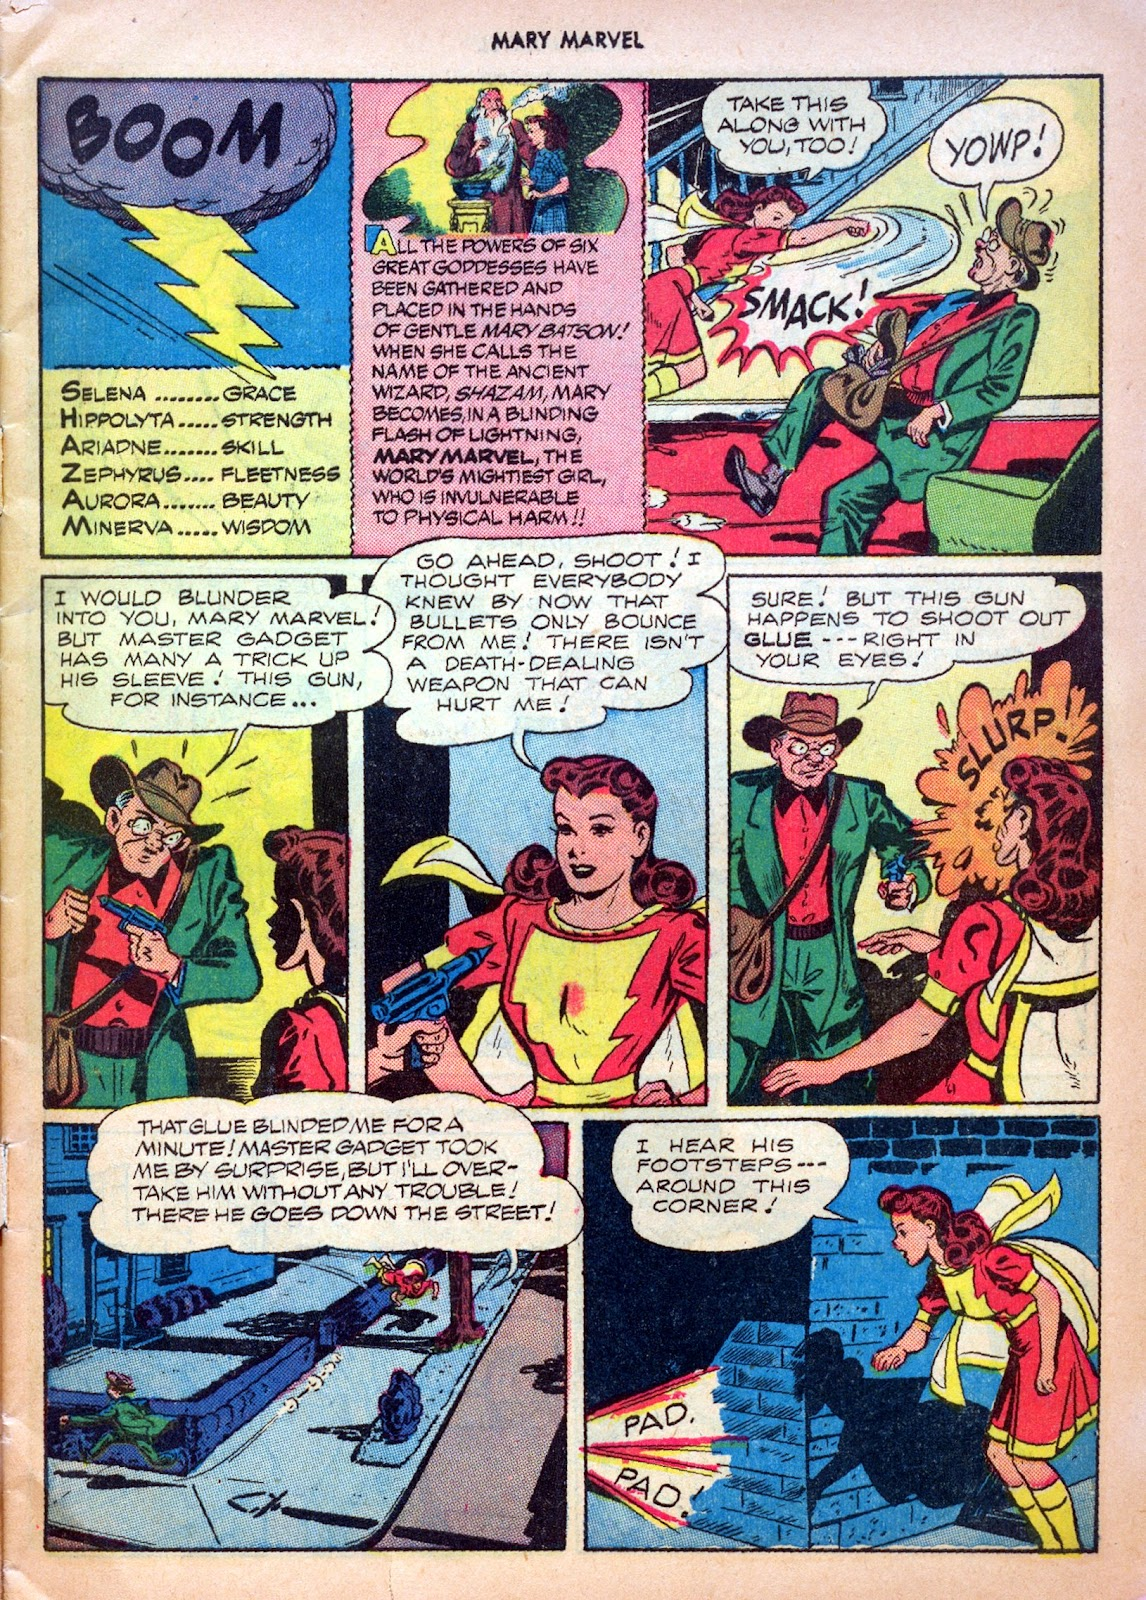 Read online Mary Marvel comic -  Issue #27 - 5